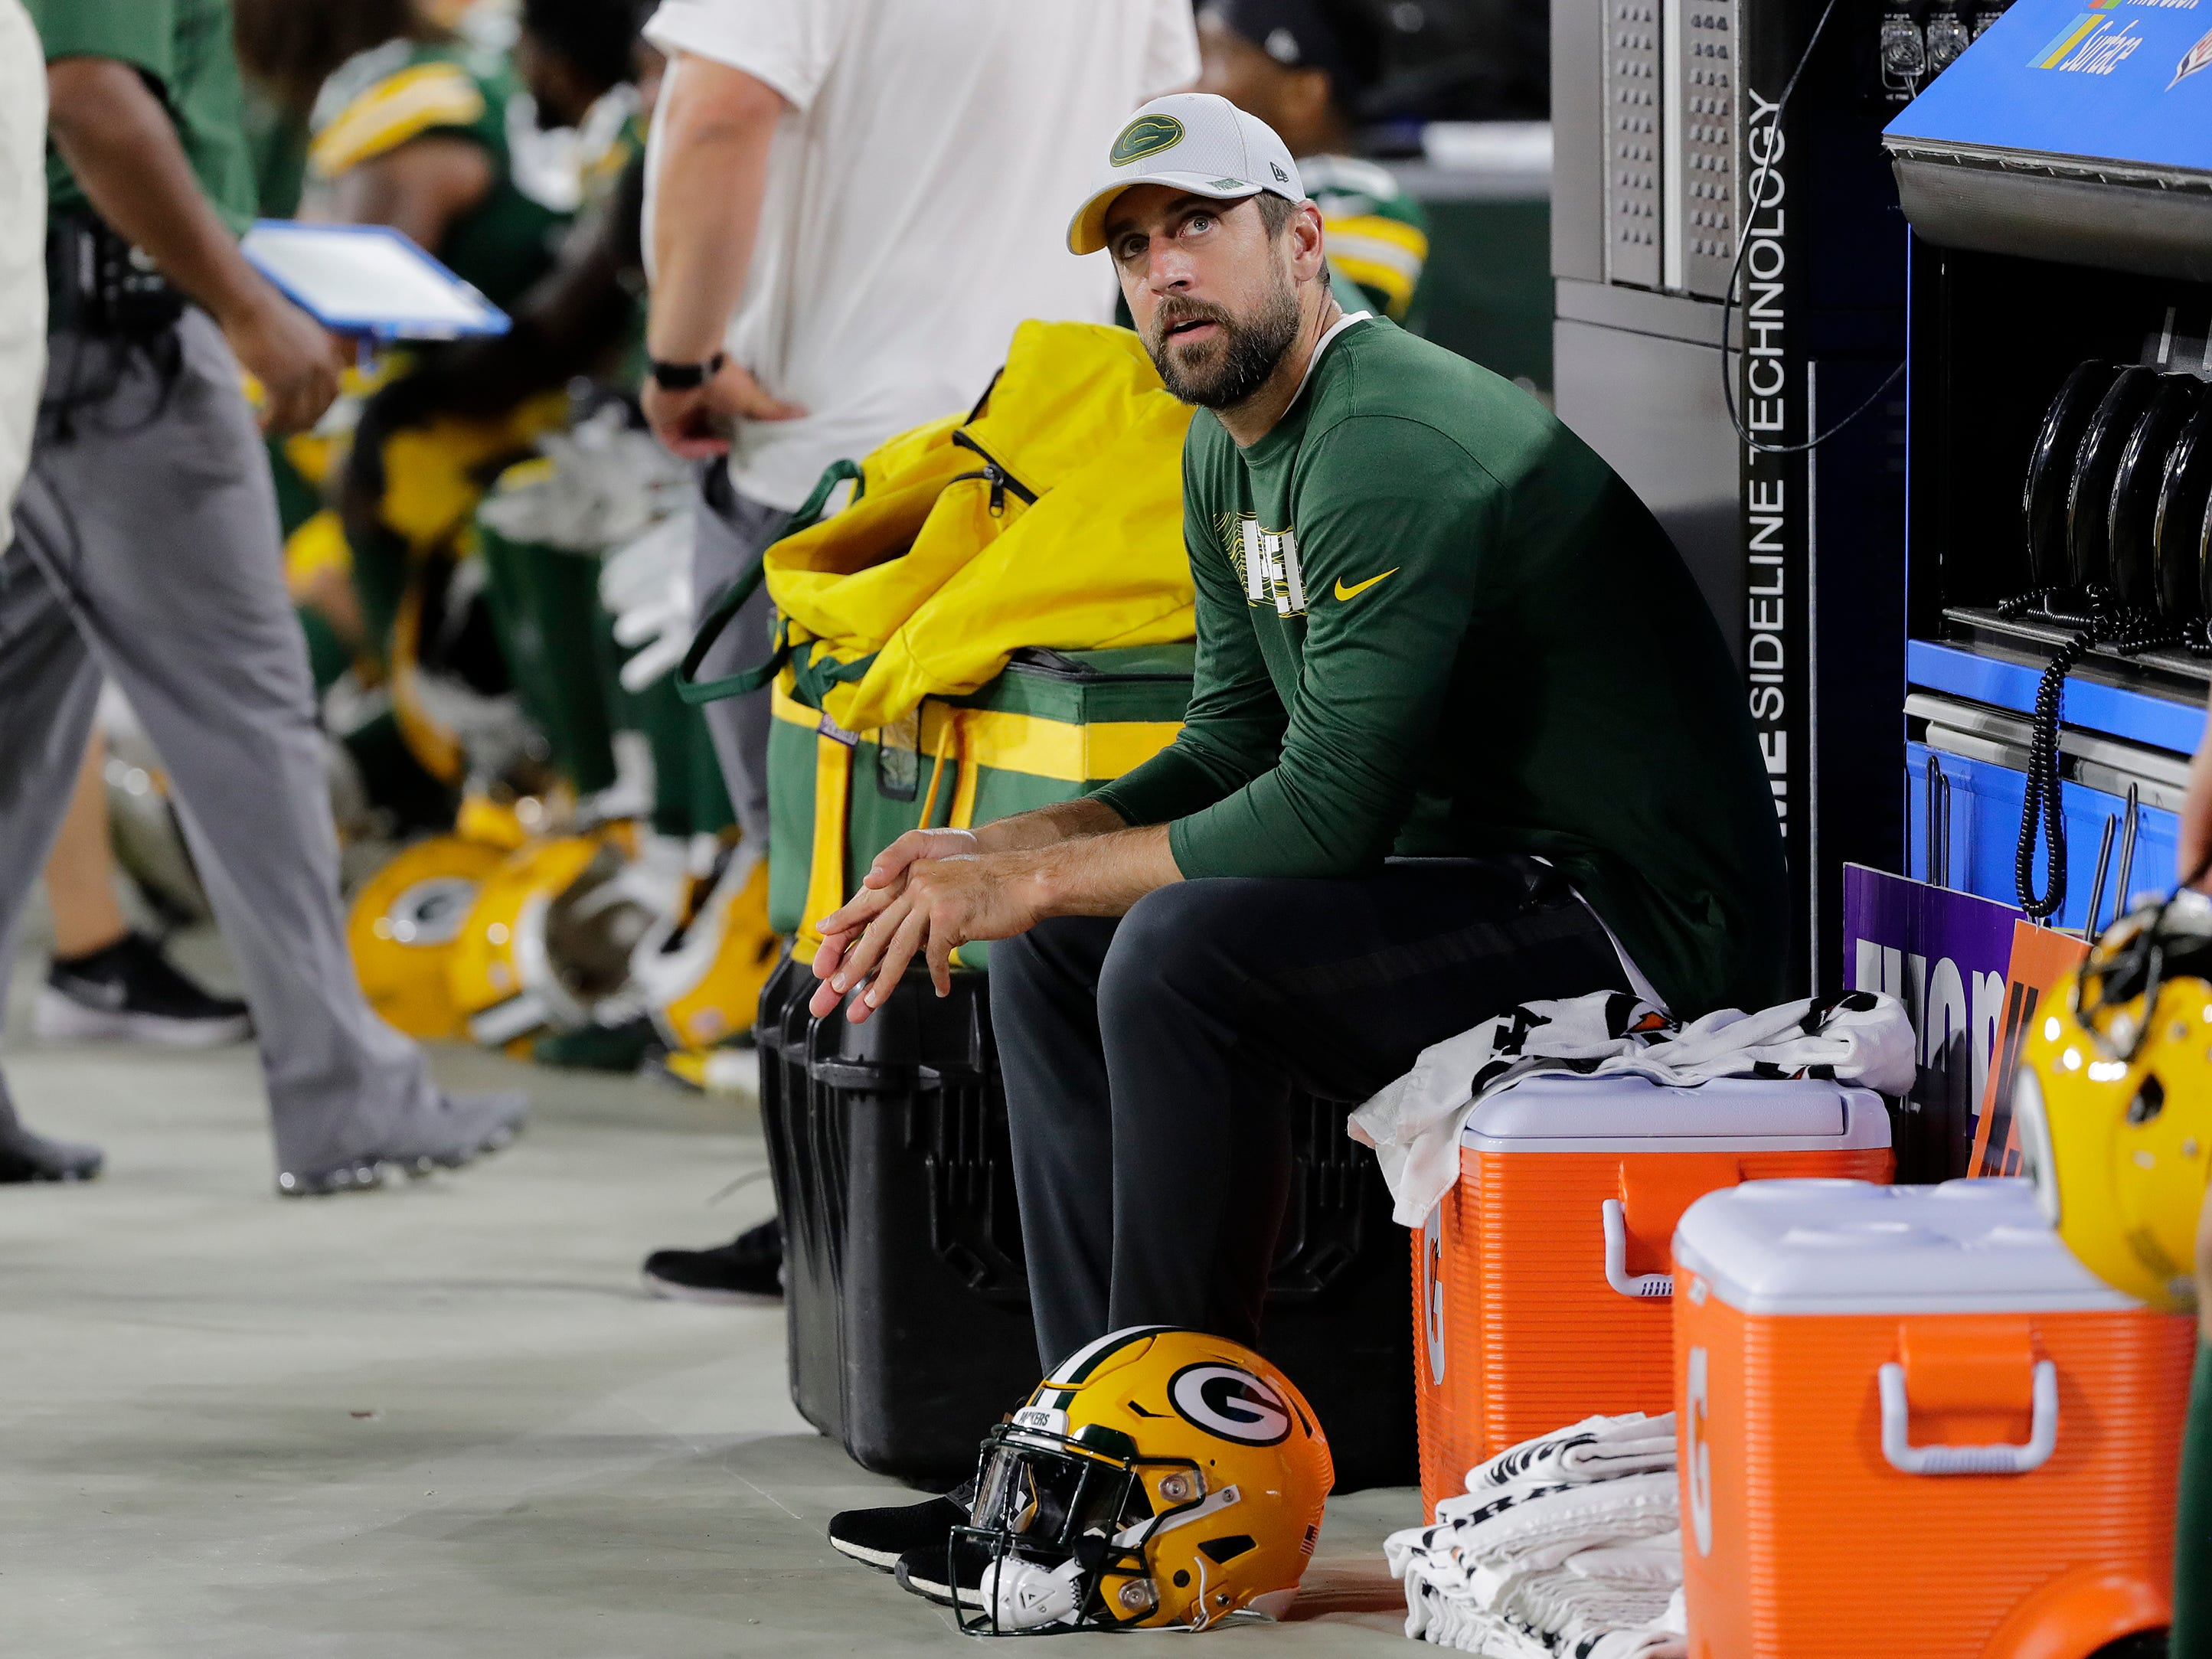 Green Bay Packers quarterback Aaron Rodgers (12) watches the final moments of an NFL preseason game against the Tennessee Titans from the sideline at Lambeau Field on Thursday, August 9, 2018 in Green Bay, Wis.